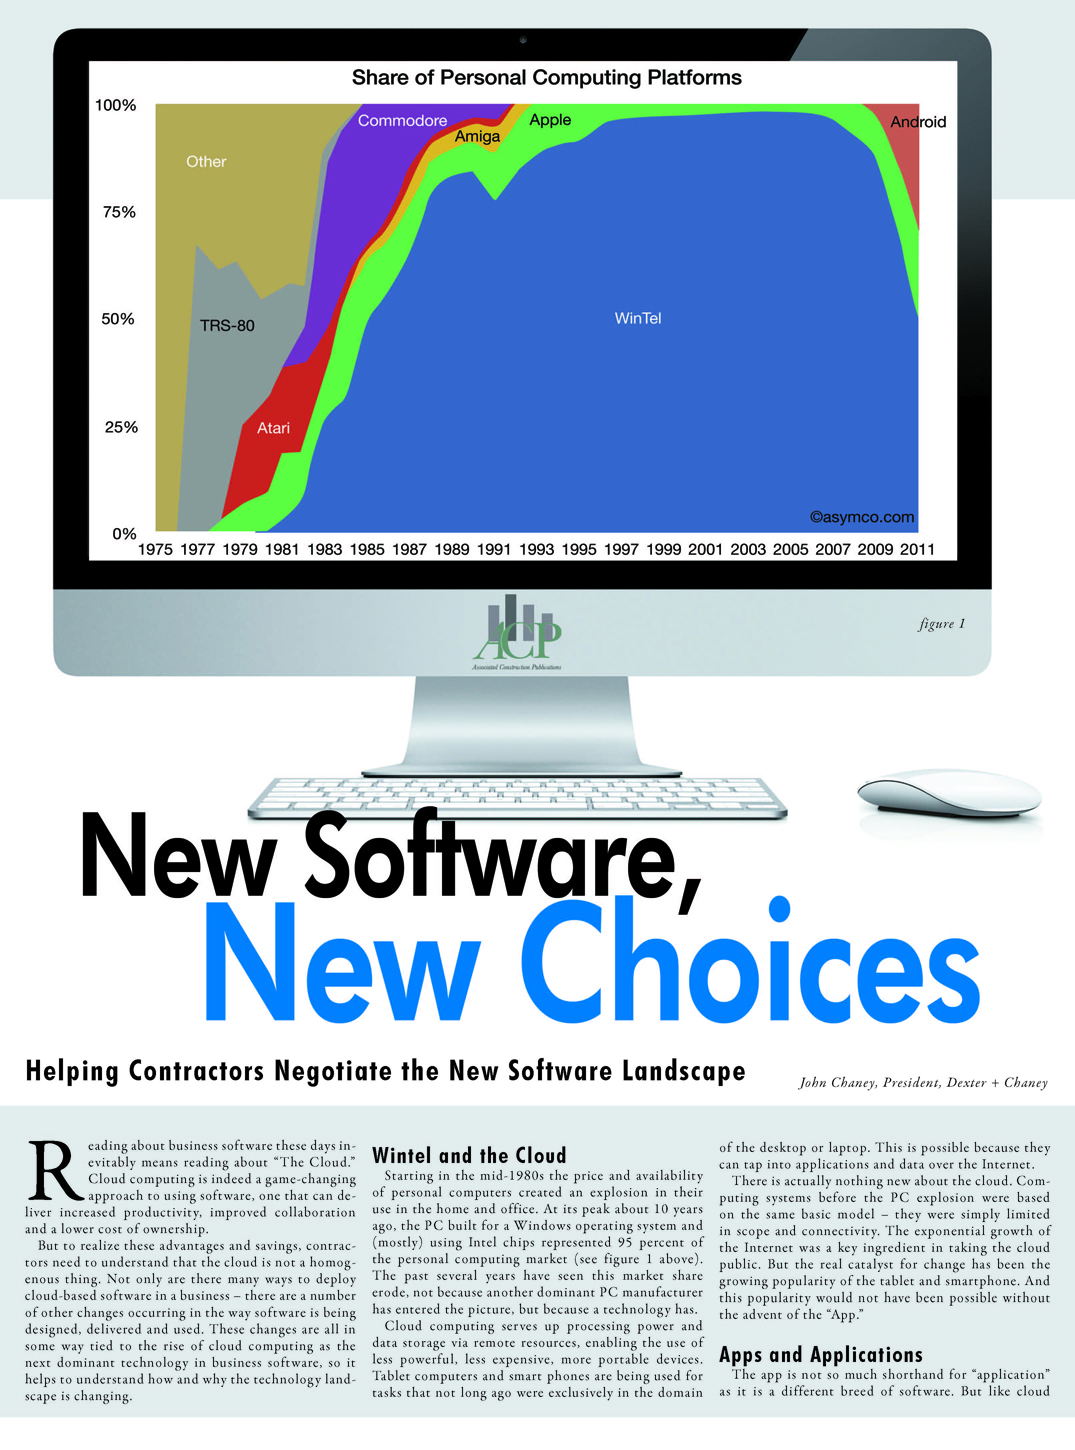 NewSoftwareNewChoices_Page_1